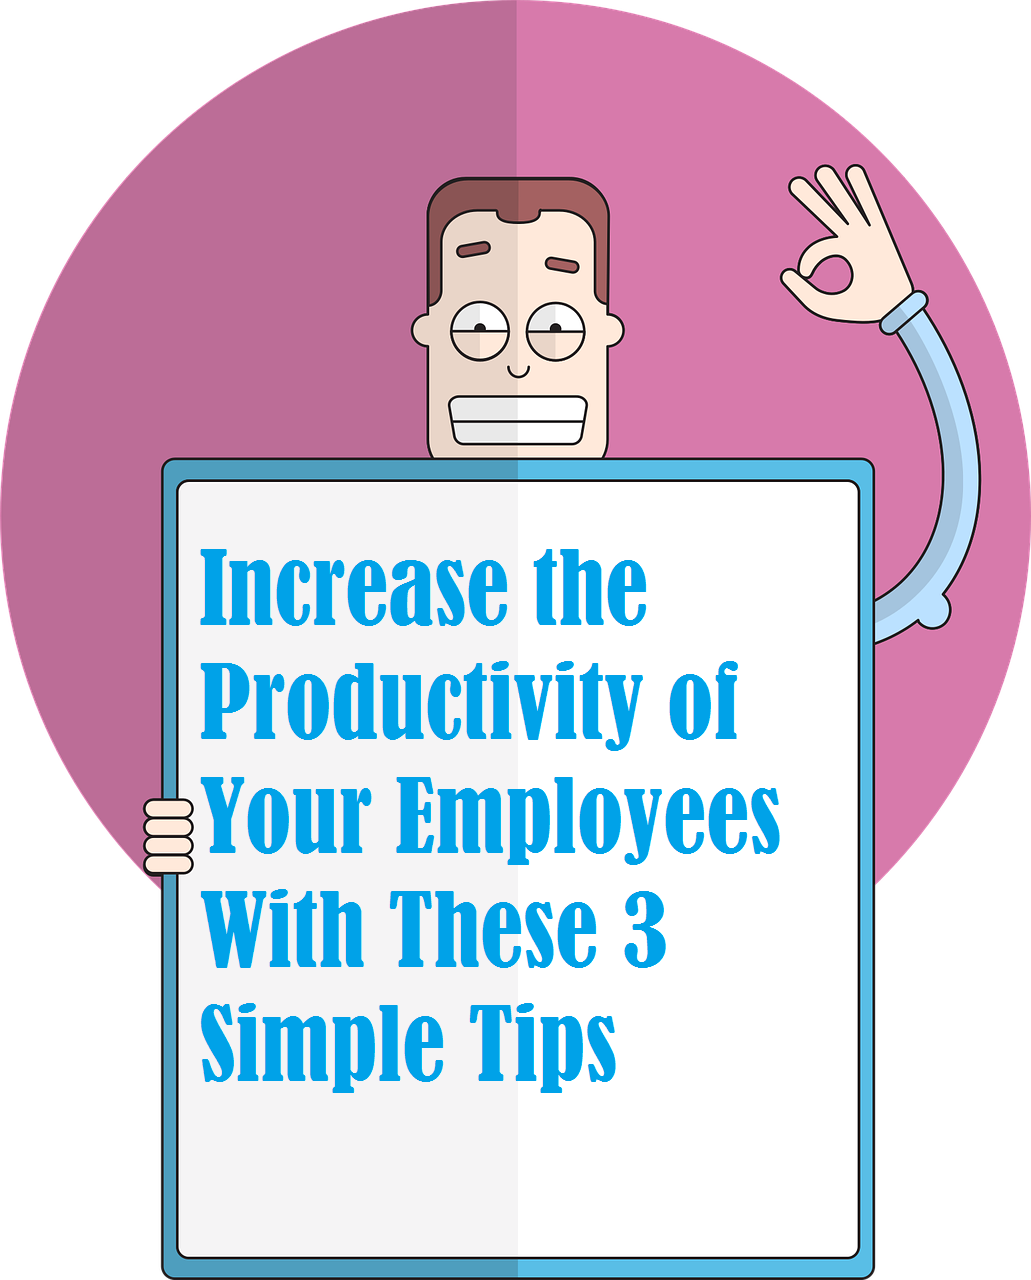 These 3 Tips Will Help You Increase The Productivity of Your Employees